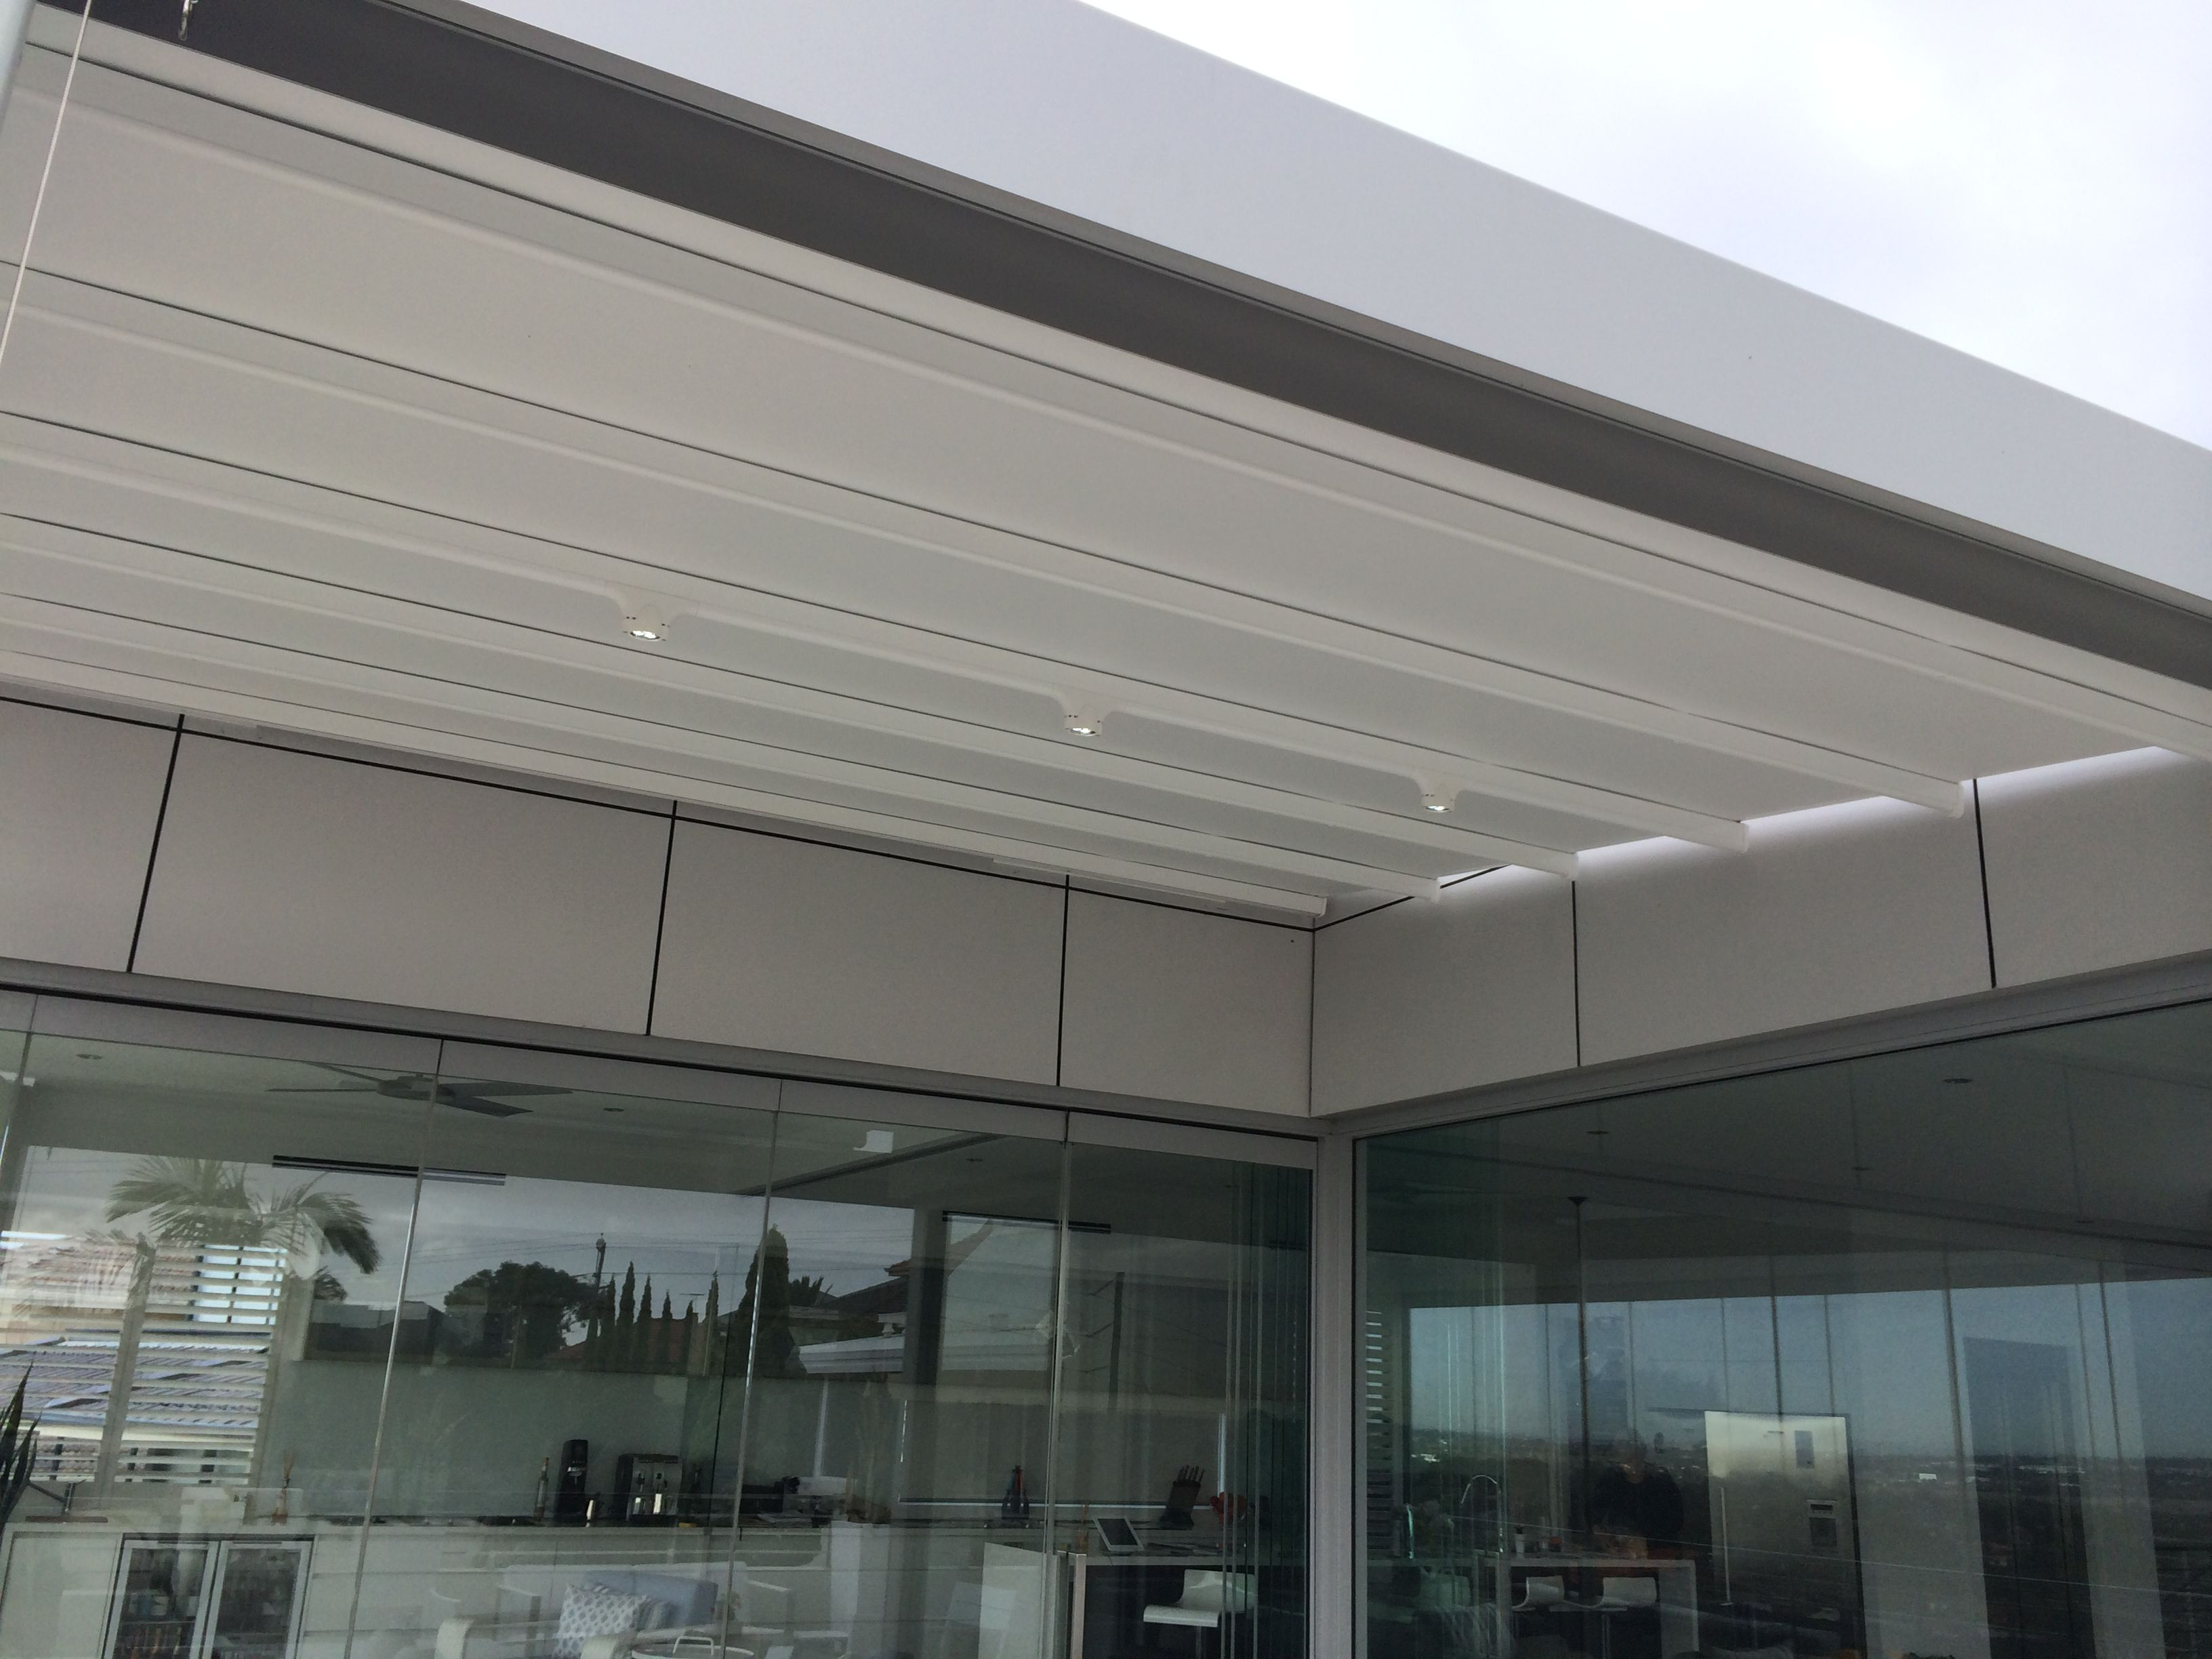 sun tm tucson awning retractable commercial products air awnings shade album and sunshade pg